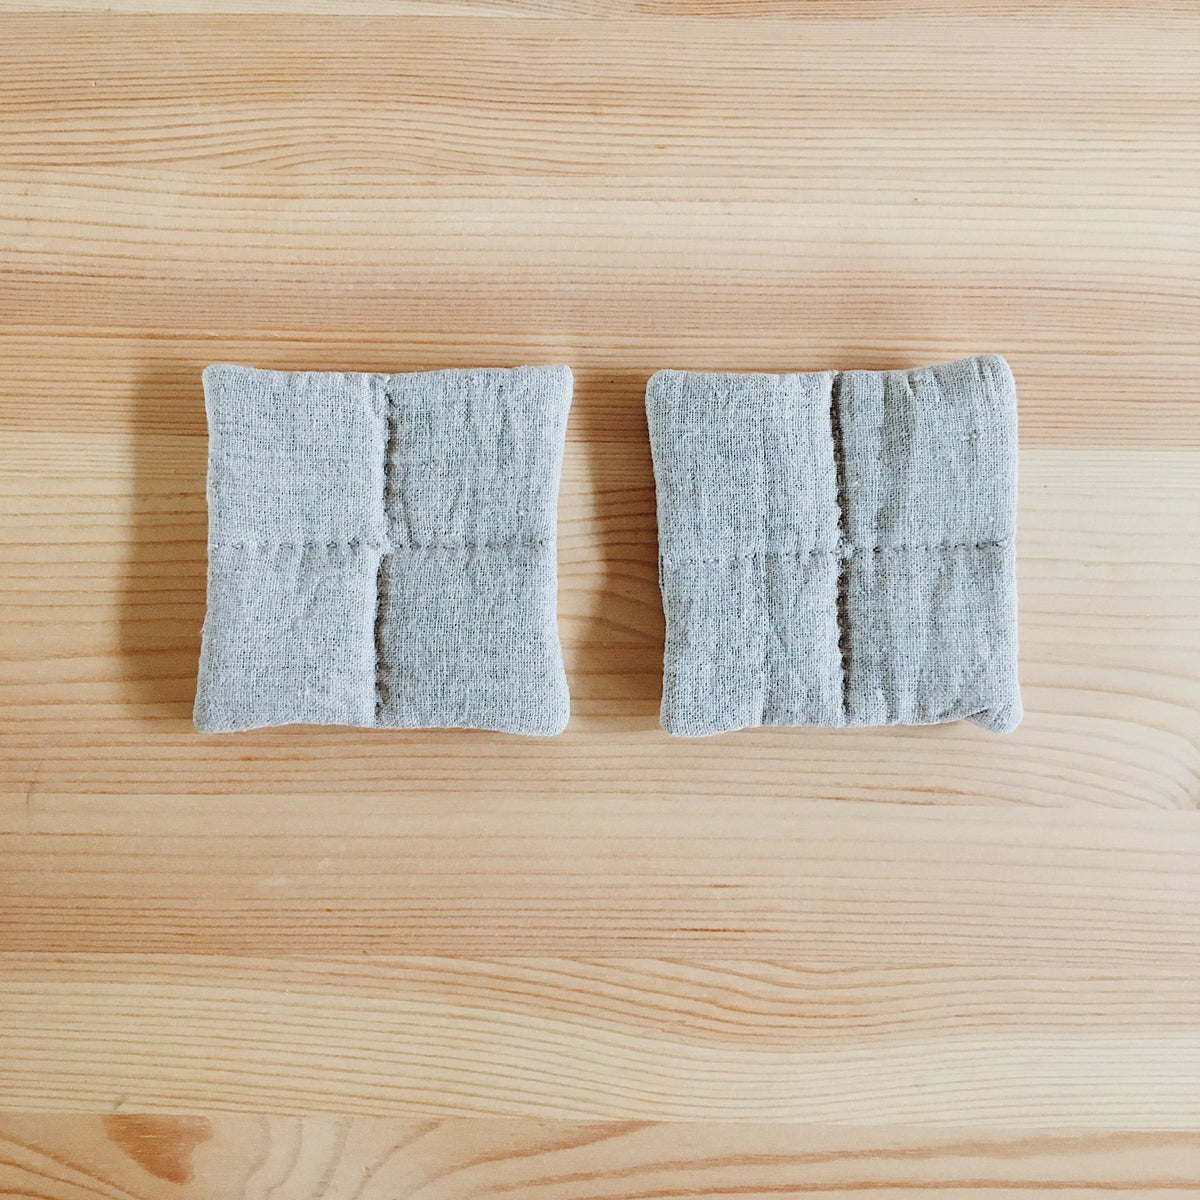 Image of Two Quilted Coasters, Natural Gray